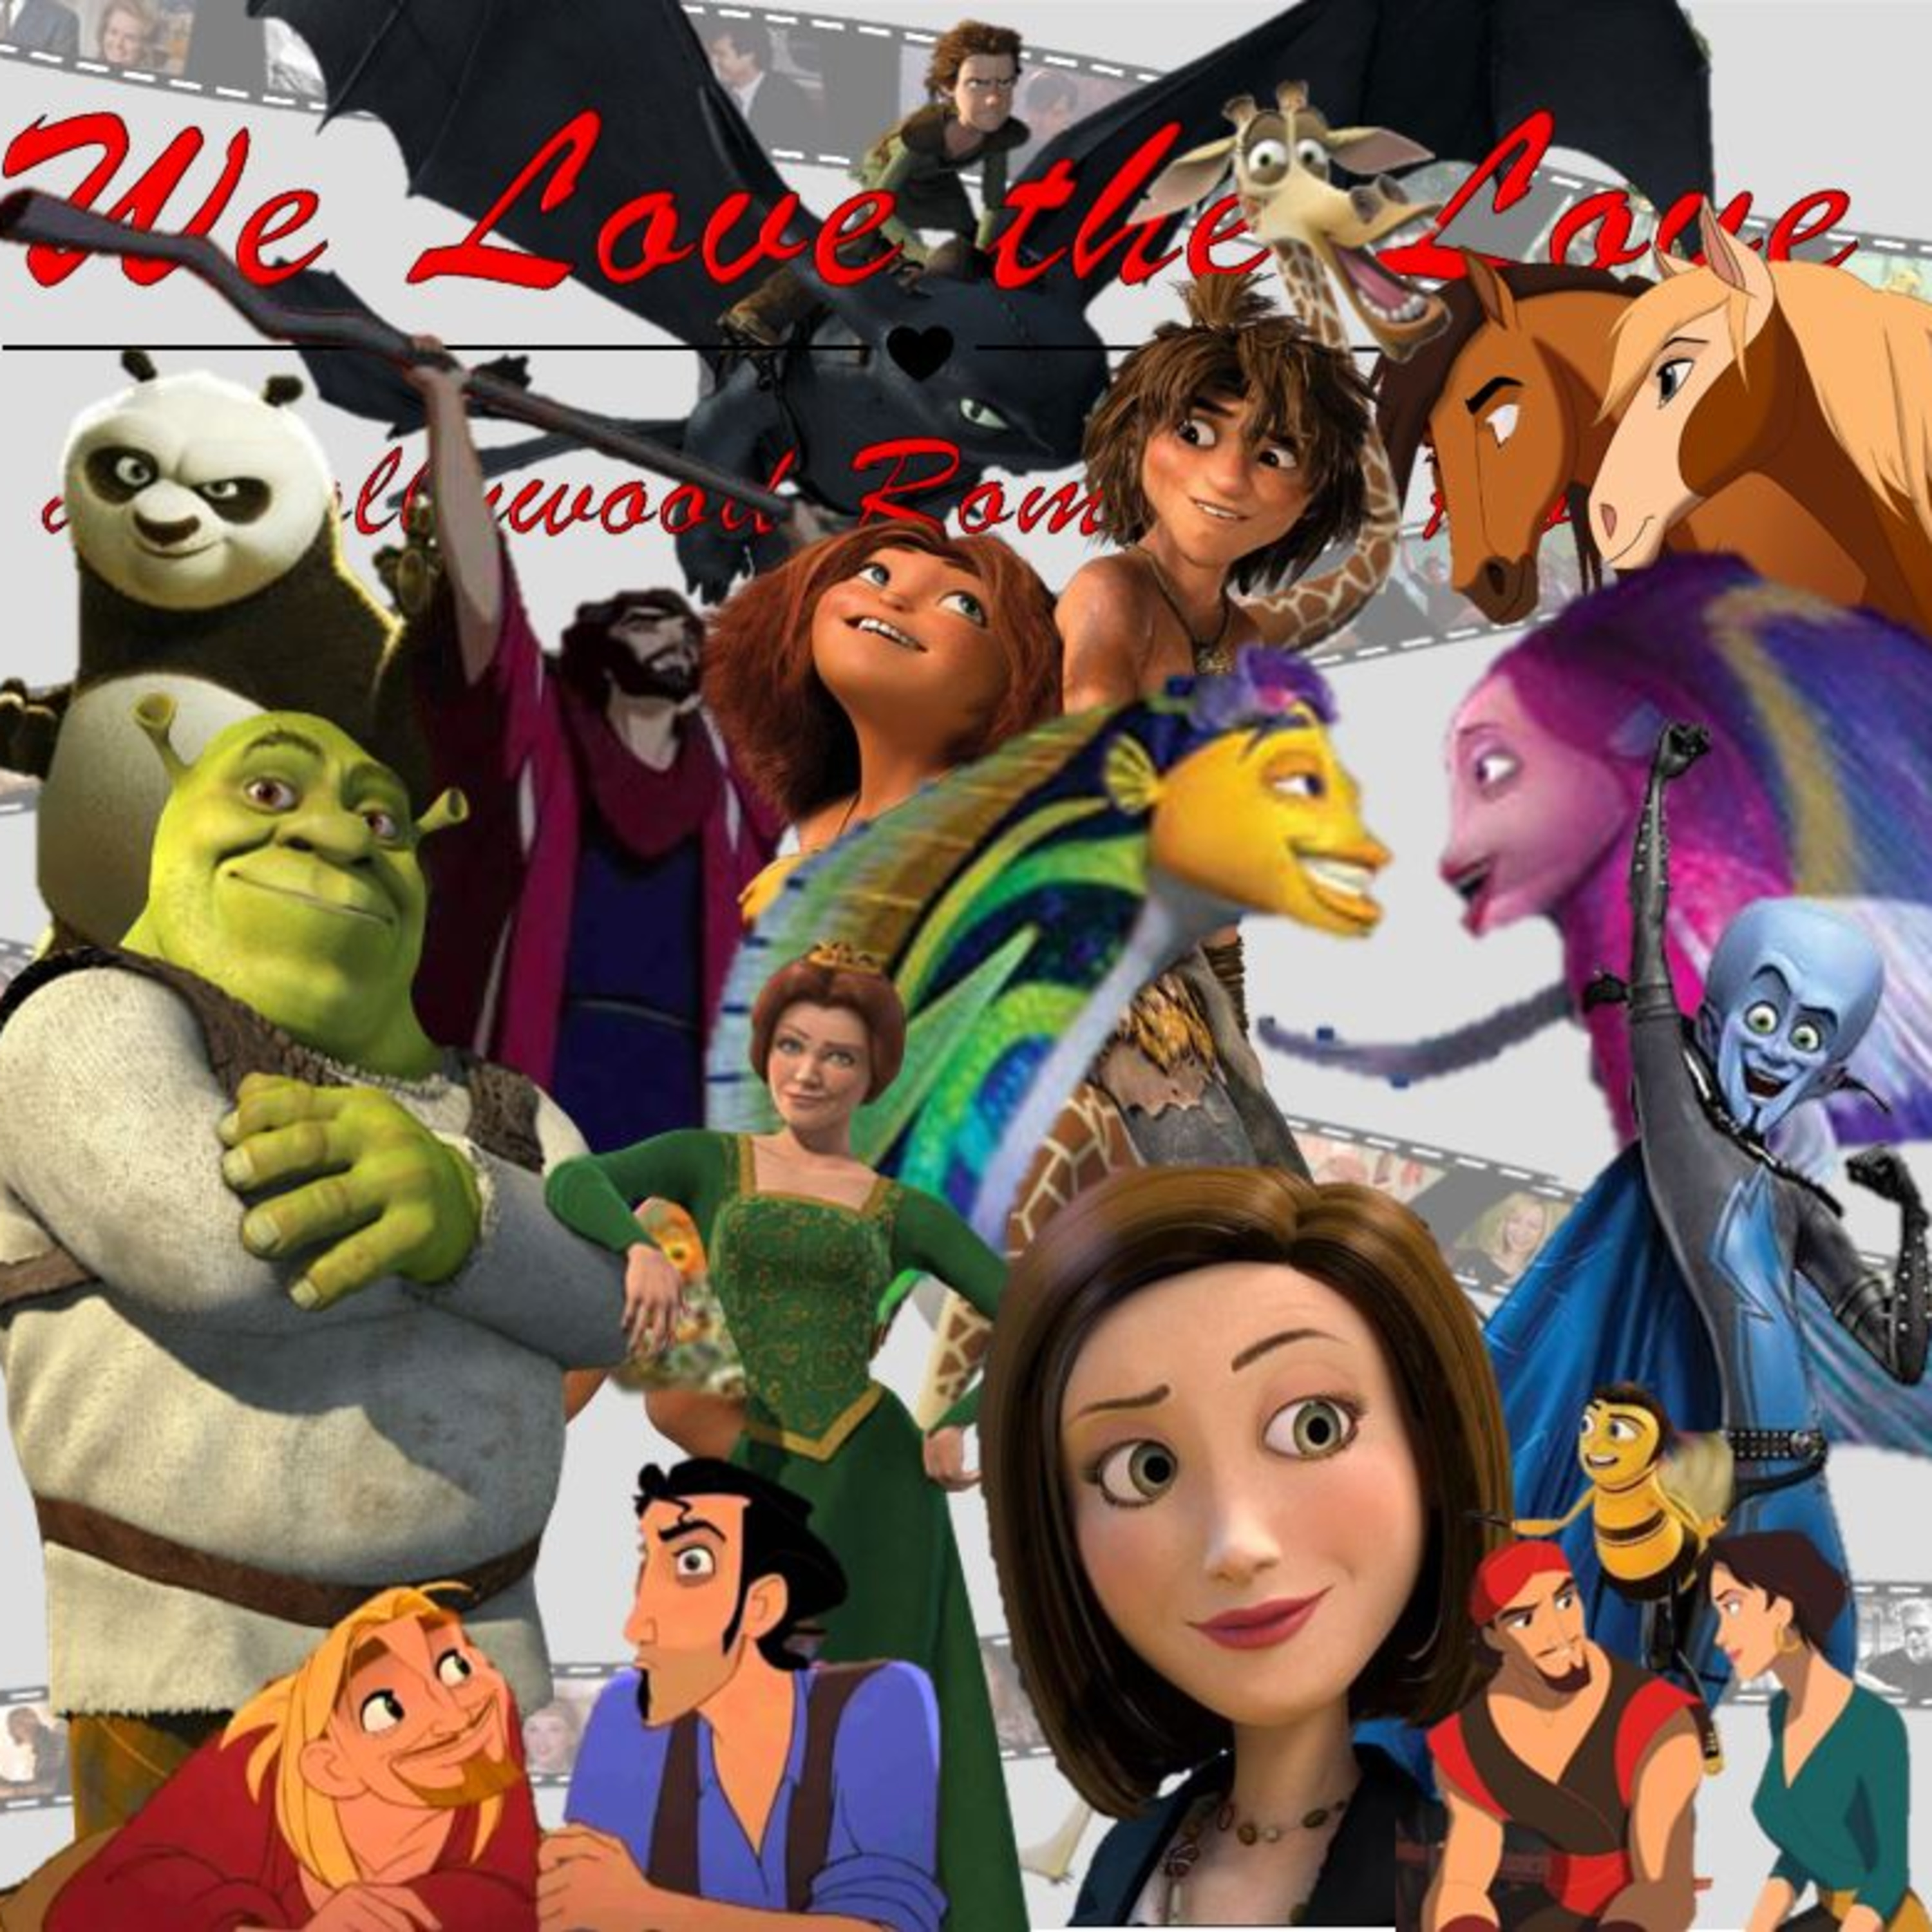 We Love the Love - The Croods